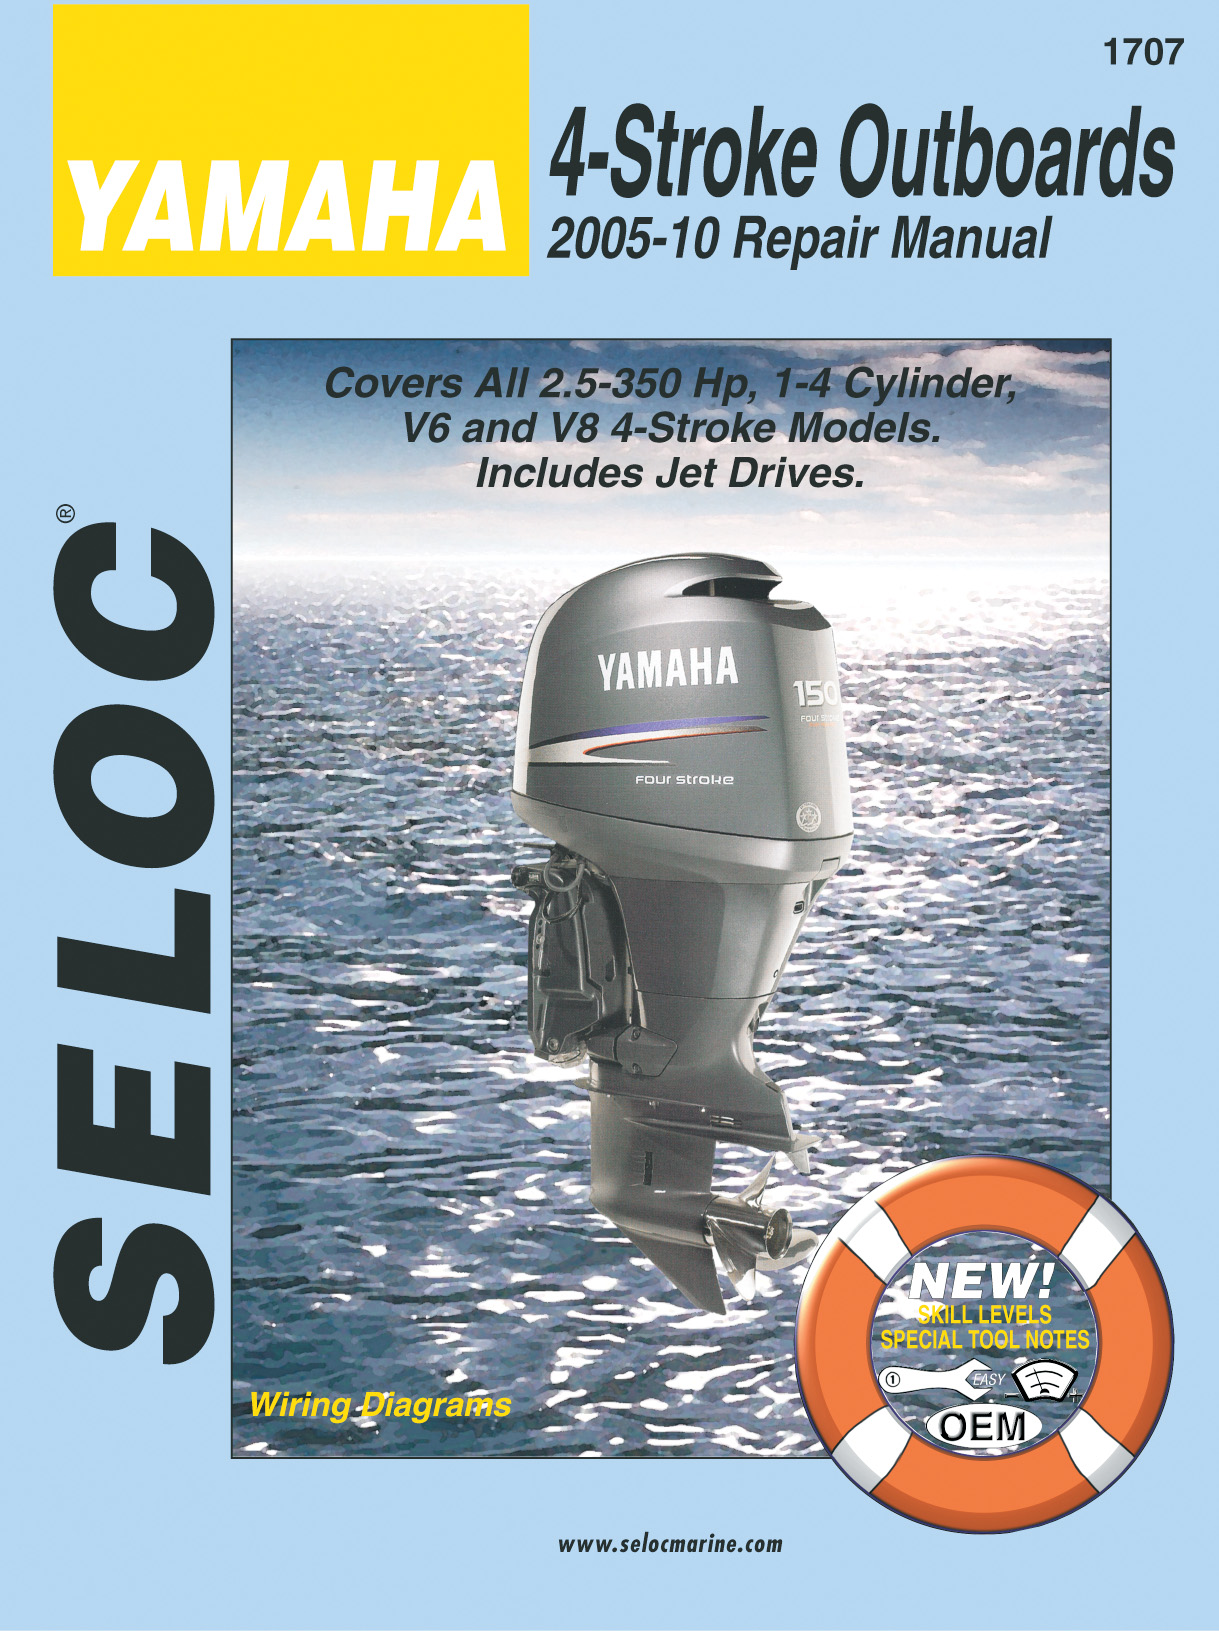 Seloc Marine Repair Manual 1707  Yamaha 4